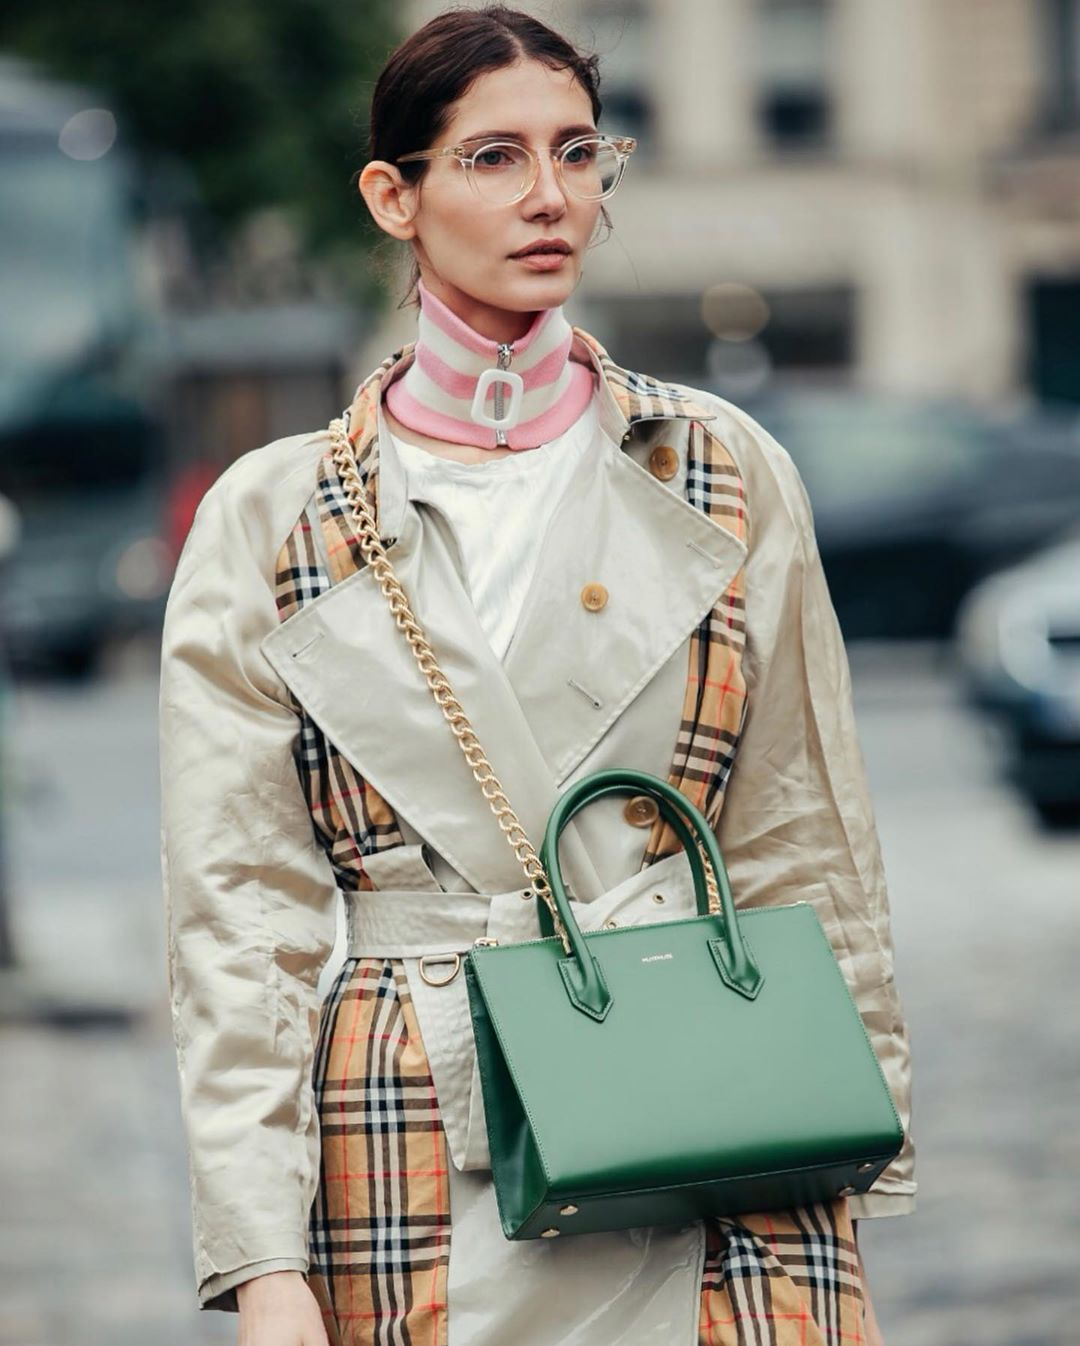 maria-zubtsova-burberry-vintage-check-trench-coat-street-style-fall-2019